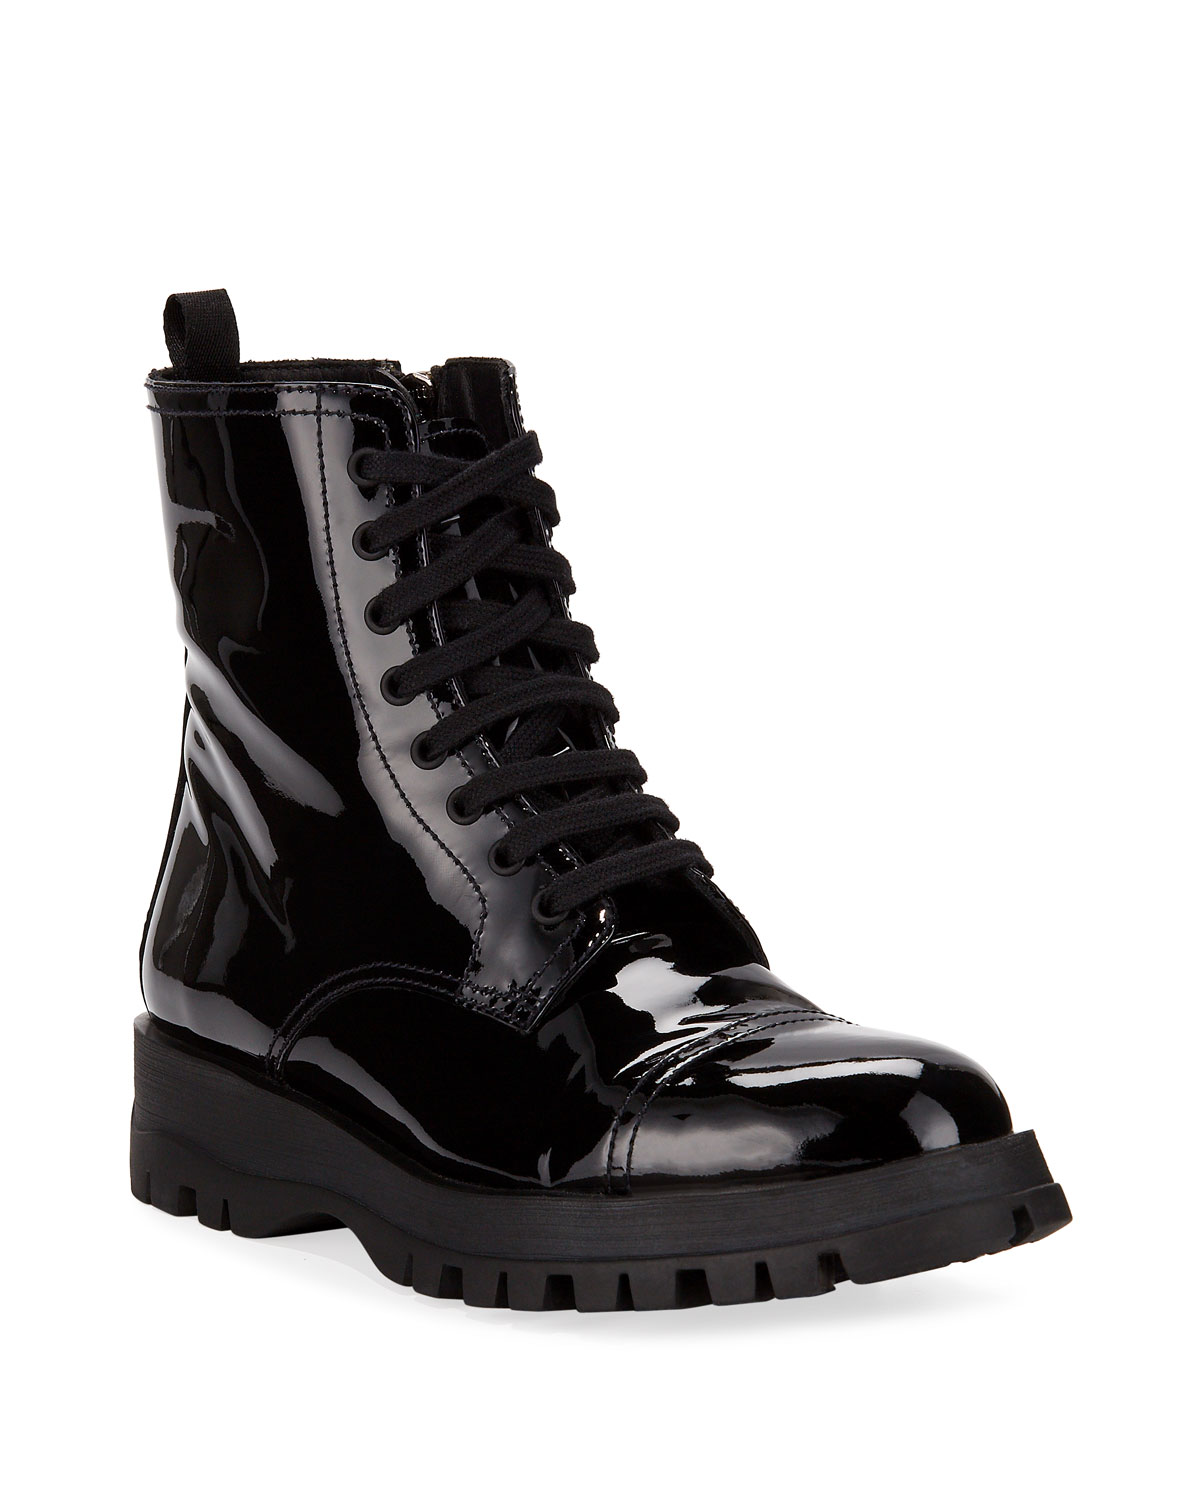 b7ed16d03ef3 Prada Patent Leather Lace-Up Boot